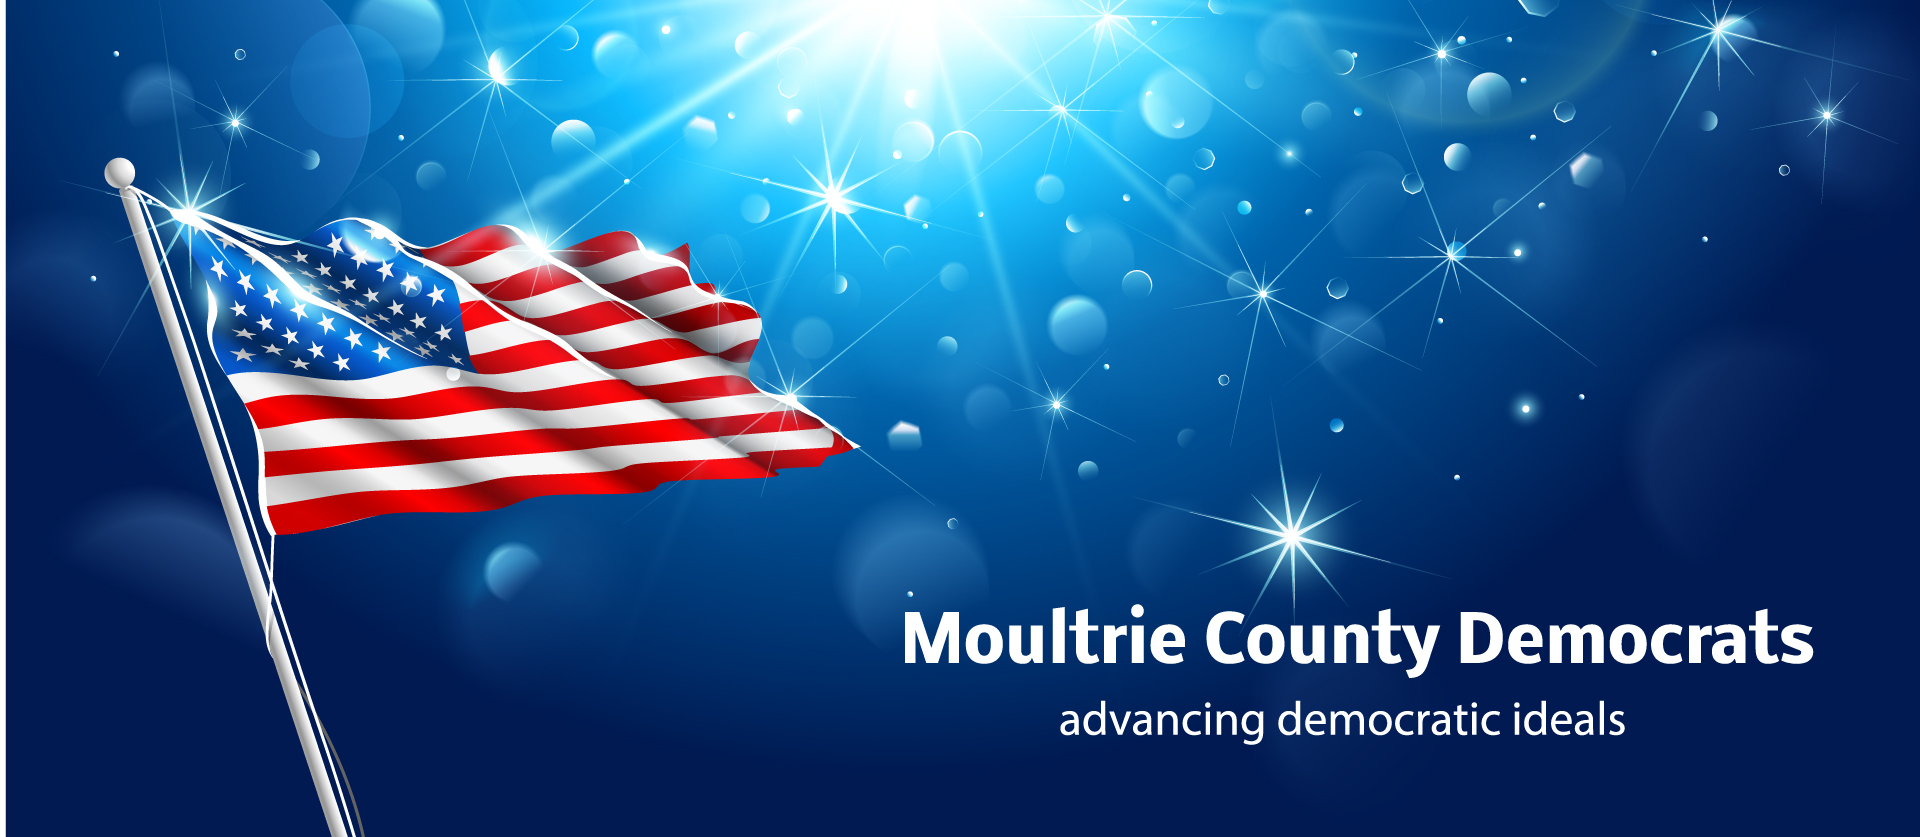 Moultrie County Democrats